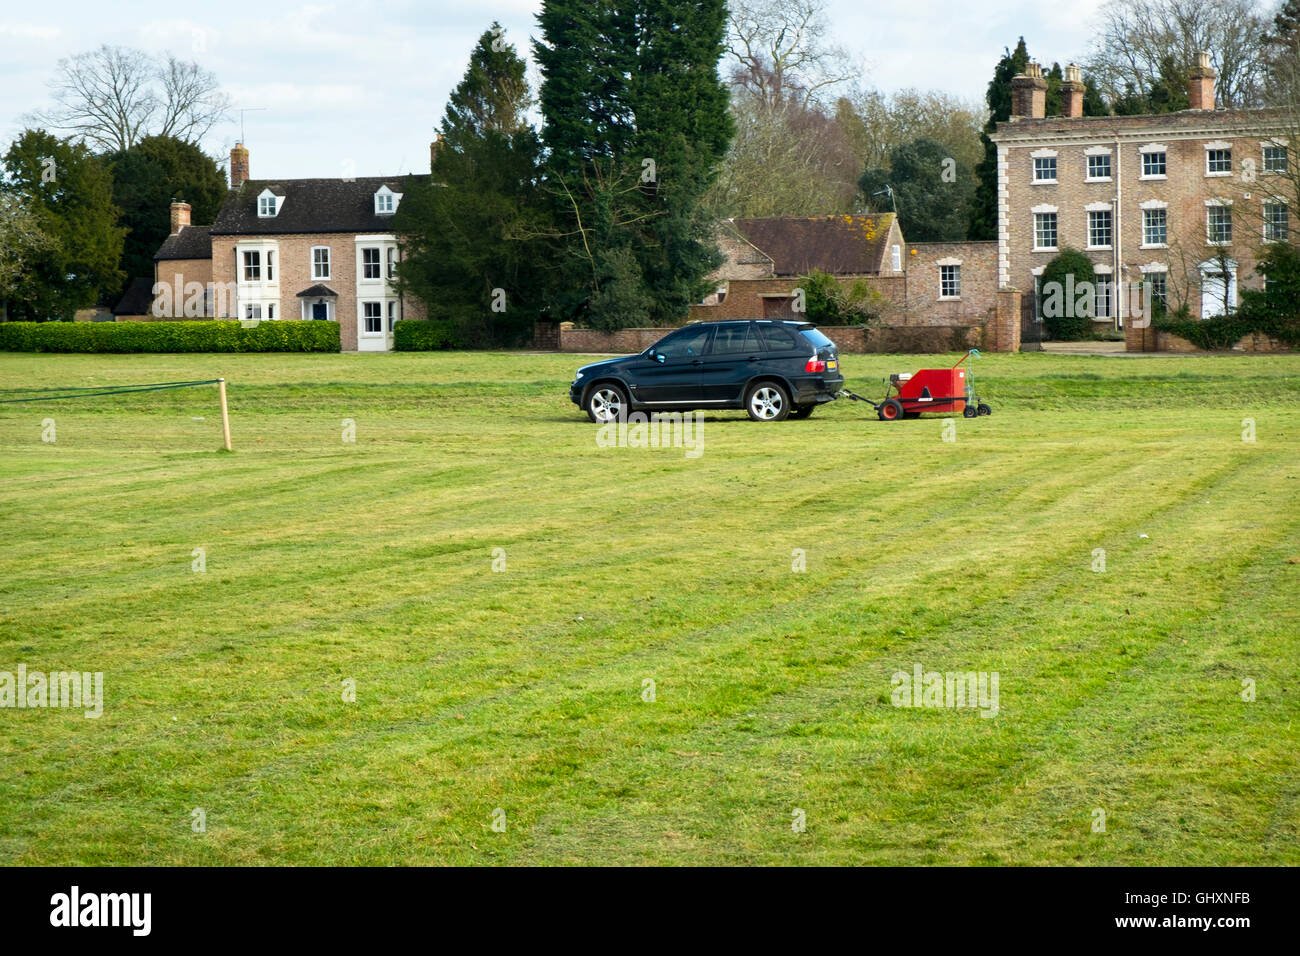 Towing a mowing machine with a BMW car. Mowing the cricket pitch at Frampton on Severn, Gloucestershire, UK - Stock Image